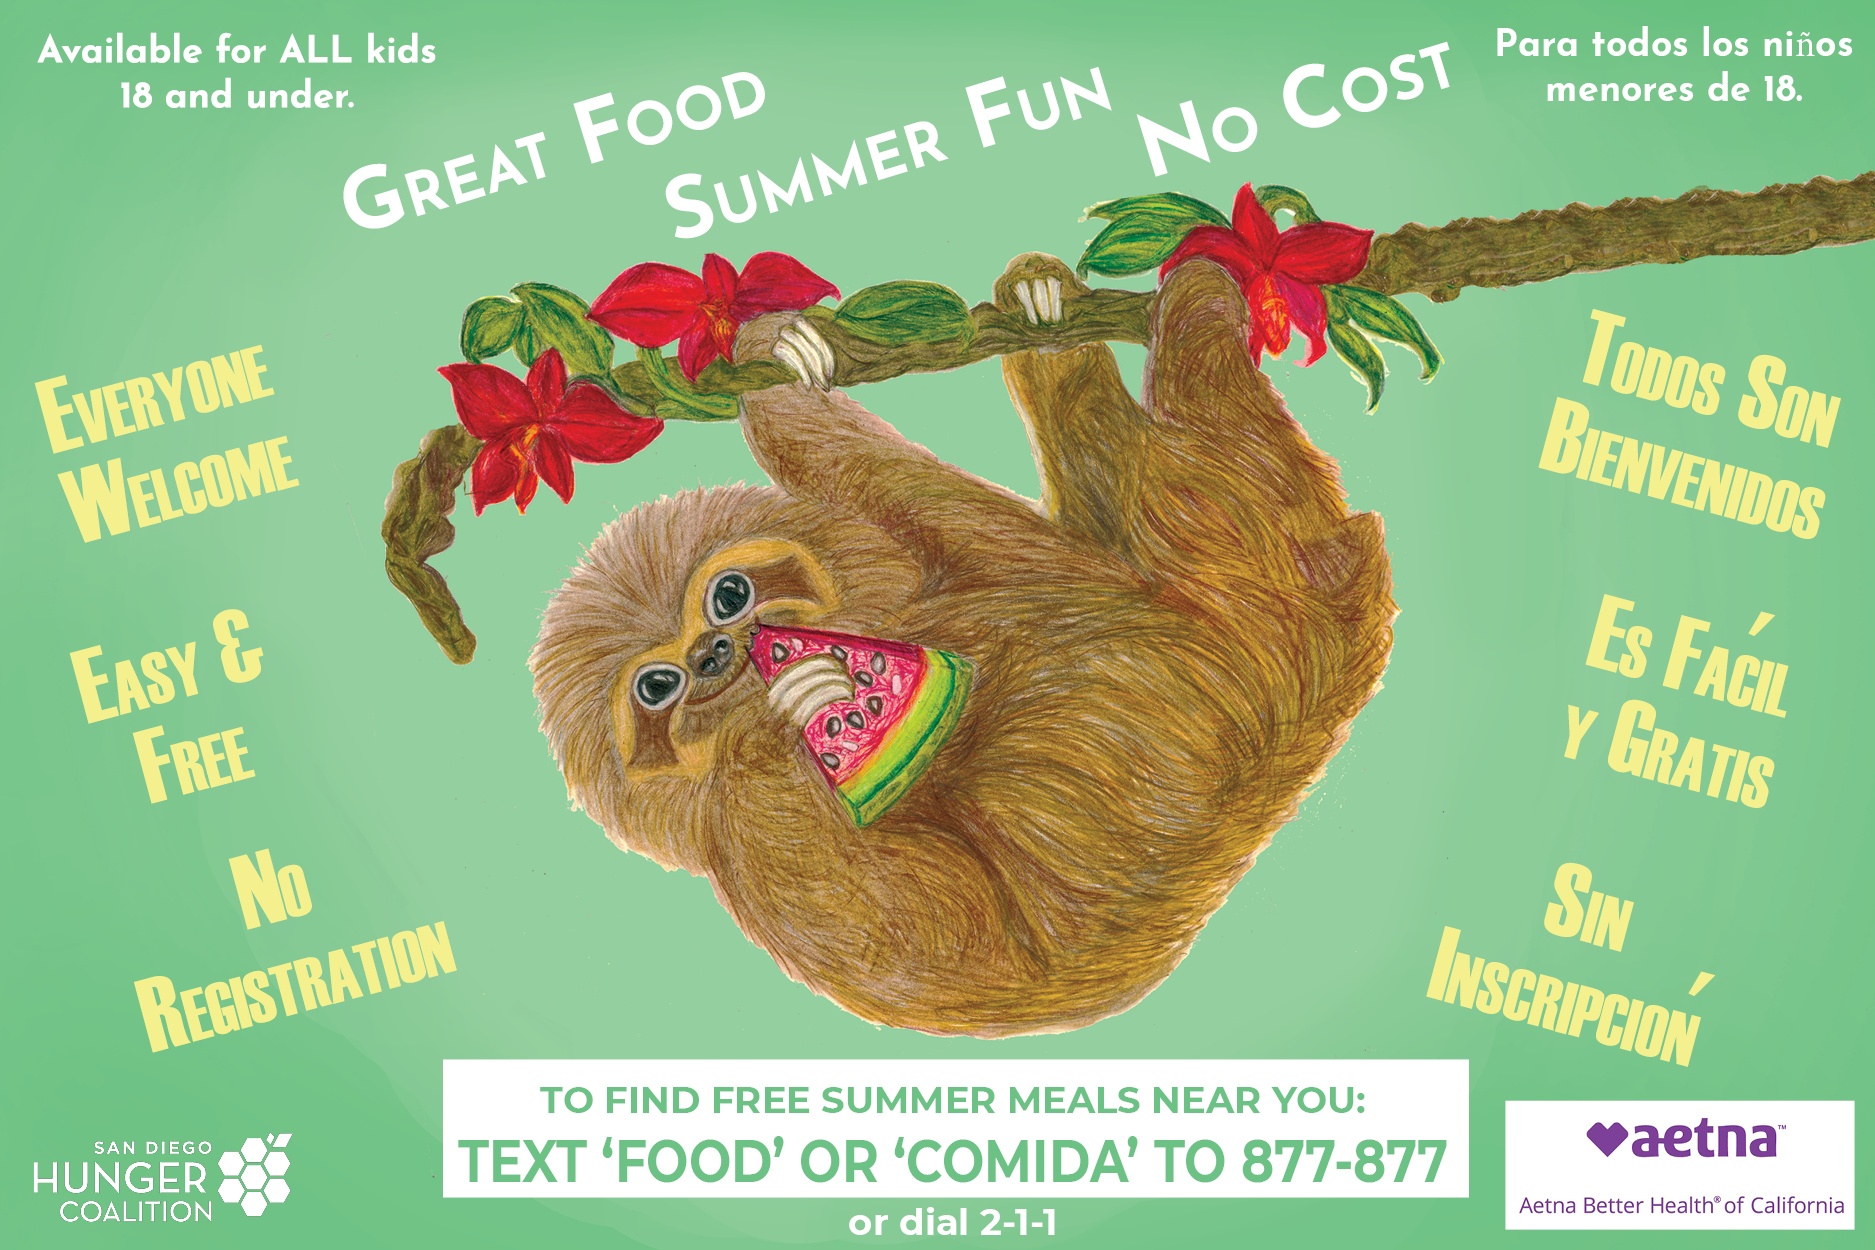 """Free Summer Meals Near You - Help us spread the word about free summer meals near you! You can text """"FOOD"""" or """"COMIDA"""" to 877-877 to find a meal site in your area.You can also download and share our posters to get the word out!"""